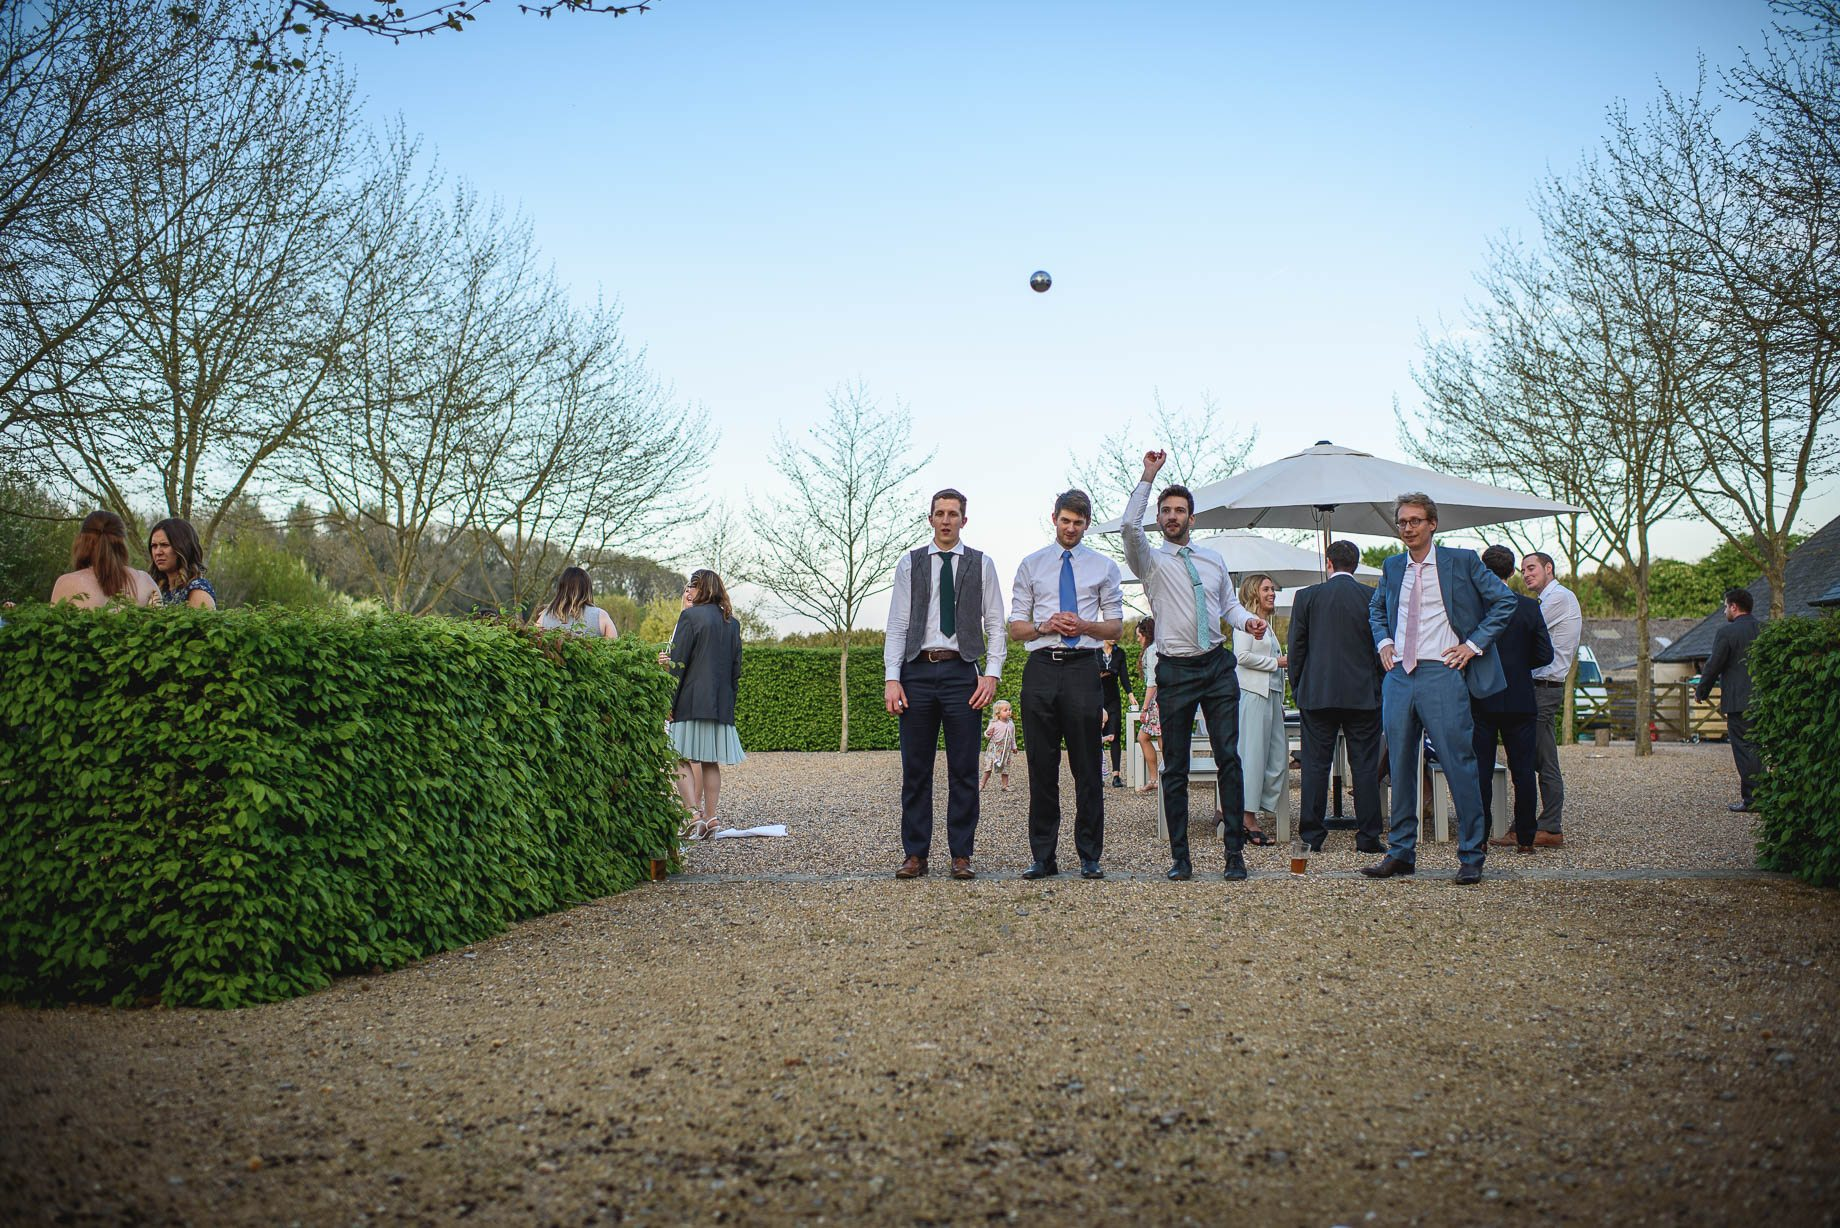 Bury Court Barn wedding photography by Guy Collier - Heather and Pat (157 of 170)